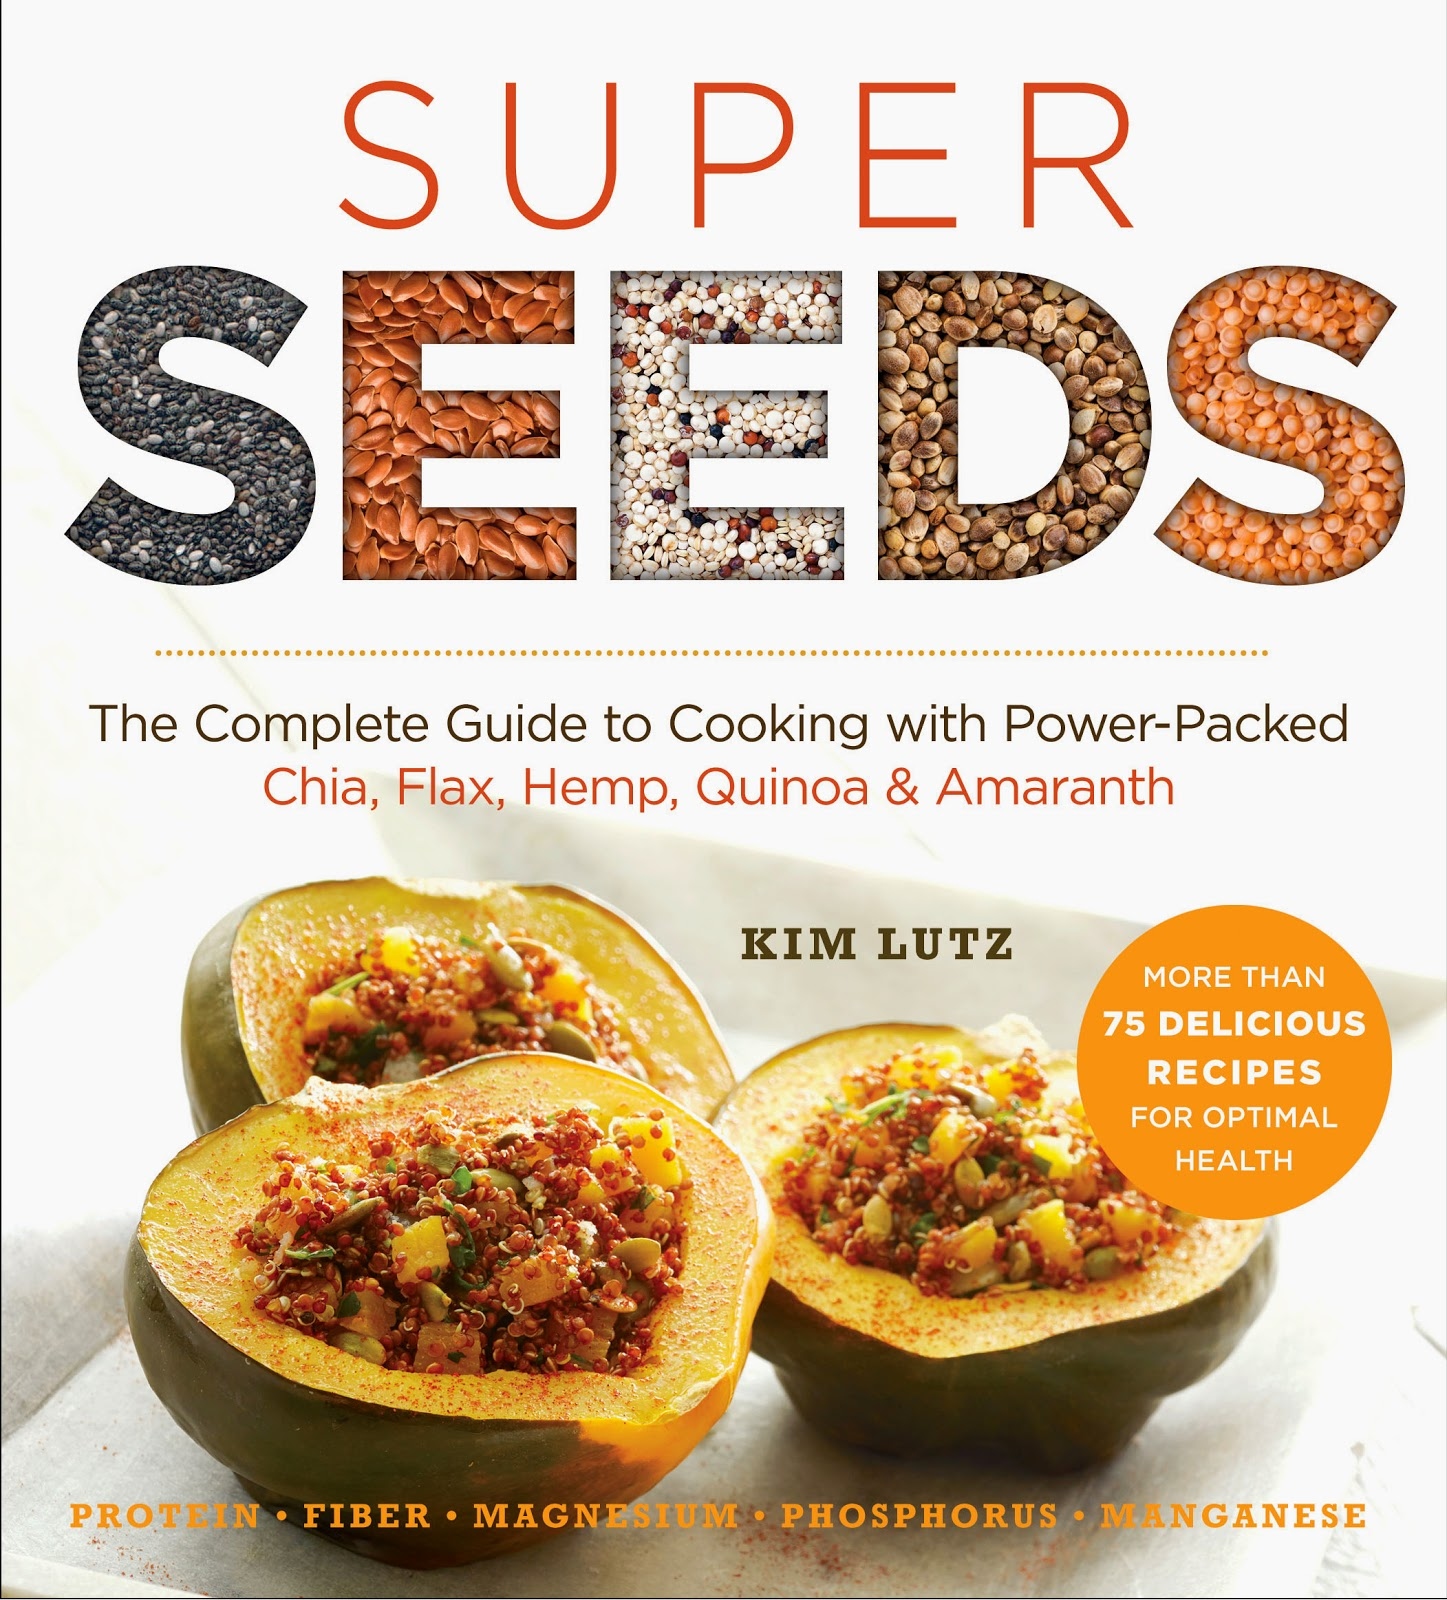 SUPER SEEDS: The Complete Guide to Cooking with Power-Packed Chia, Flax, Hemp, Quinoa & Amaranth